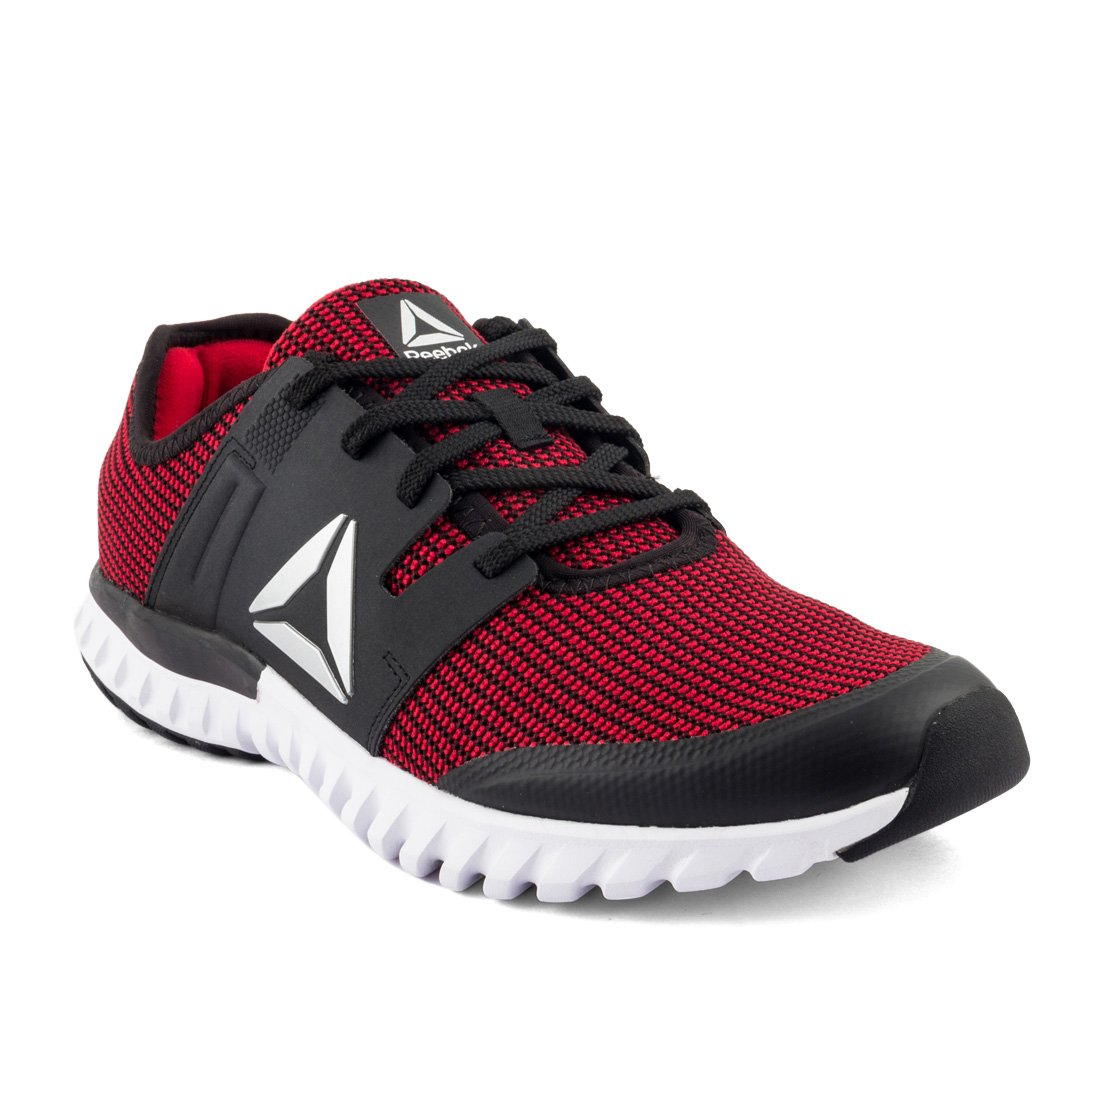 Reebok Twist Run Men s Sports Running Shoe  Buy Online at Low Prices in  India - Amazon.in 6856c6a2f